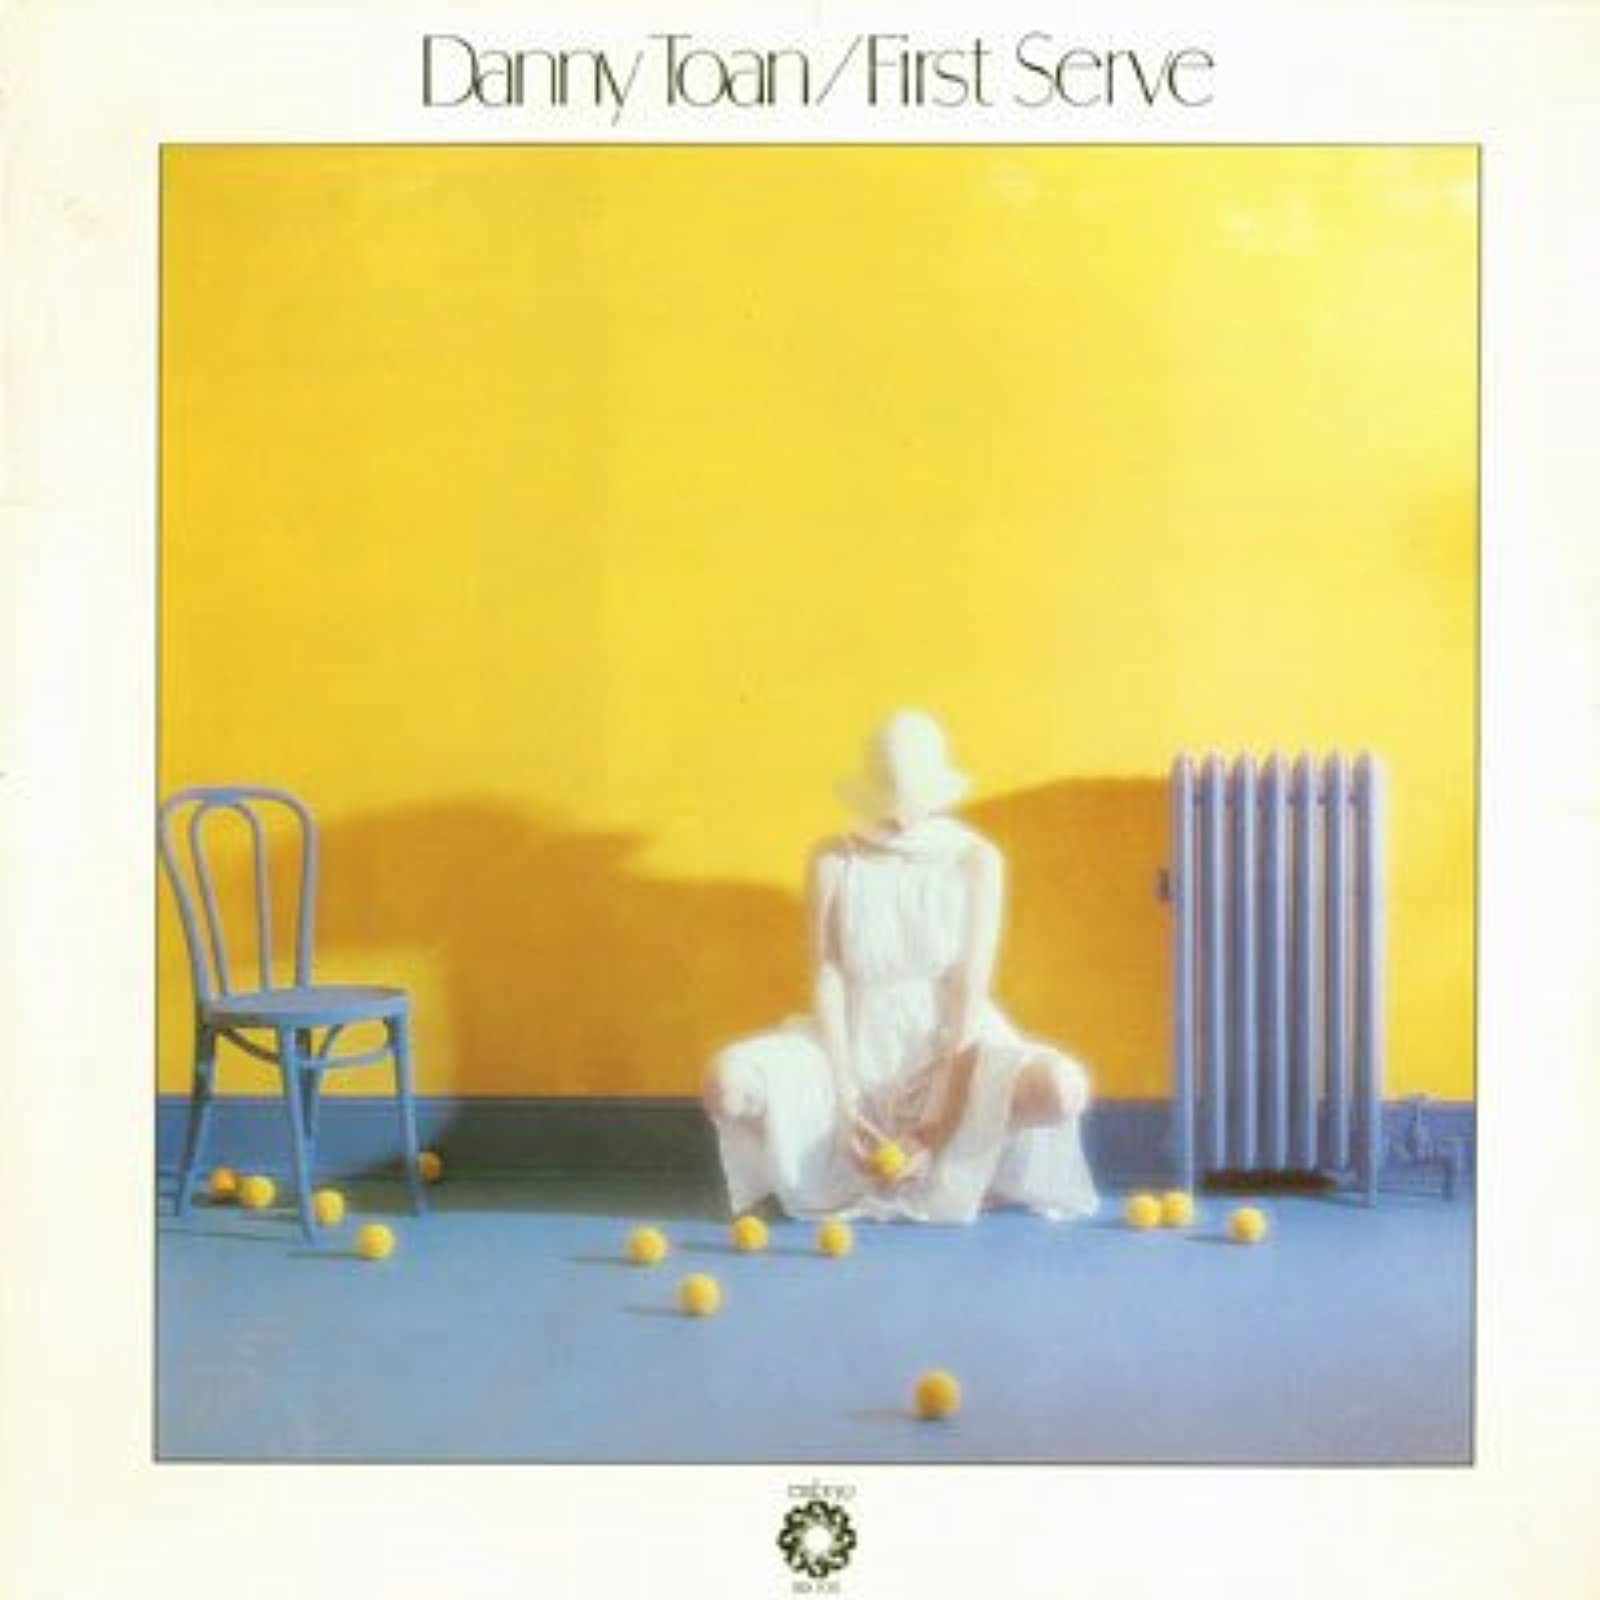 First Serve By Toan Danny On Vinyl  Record